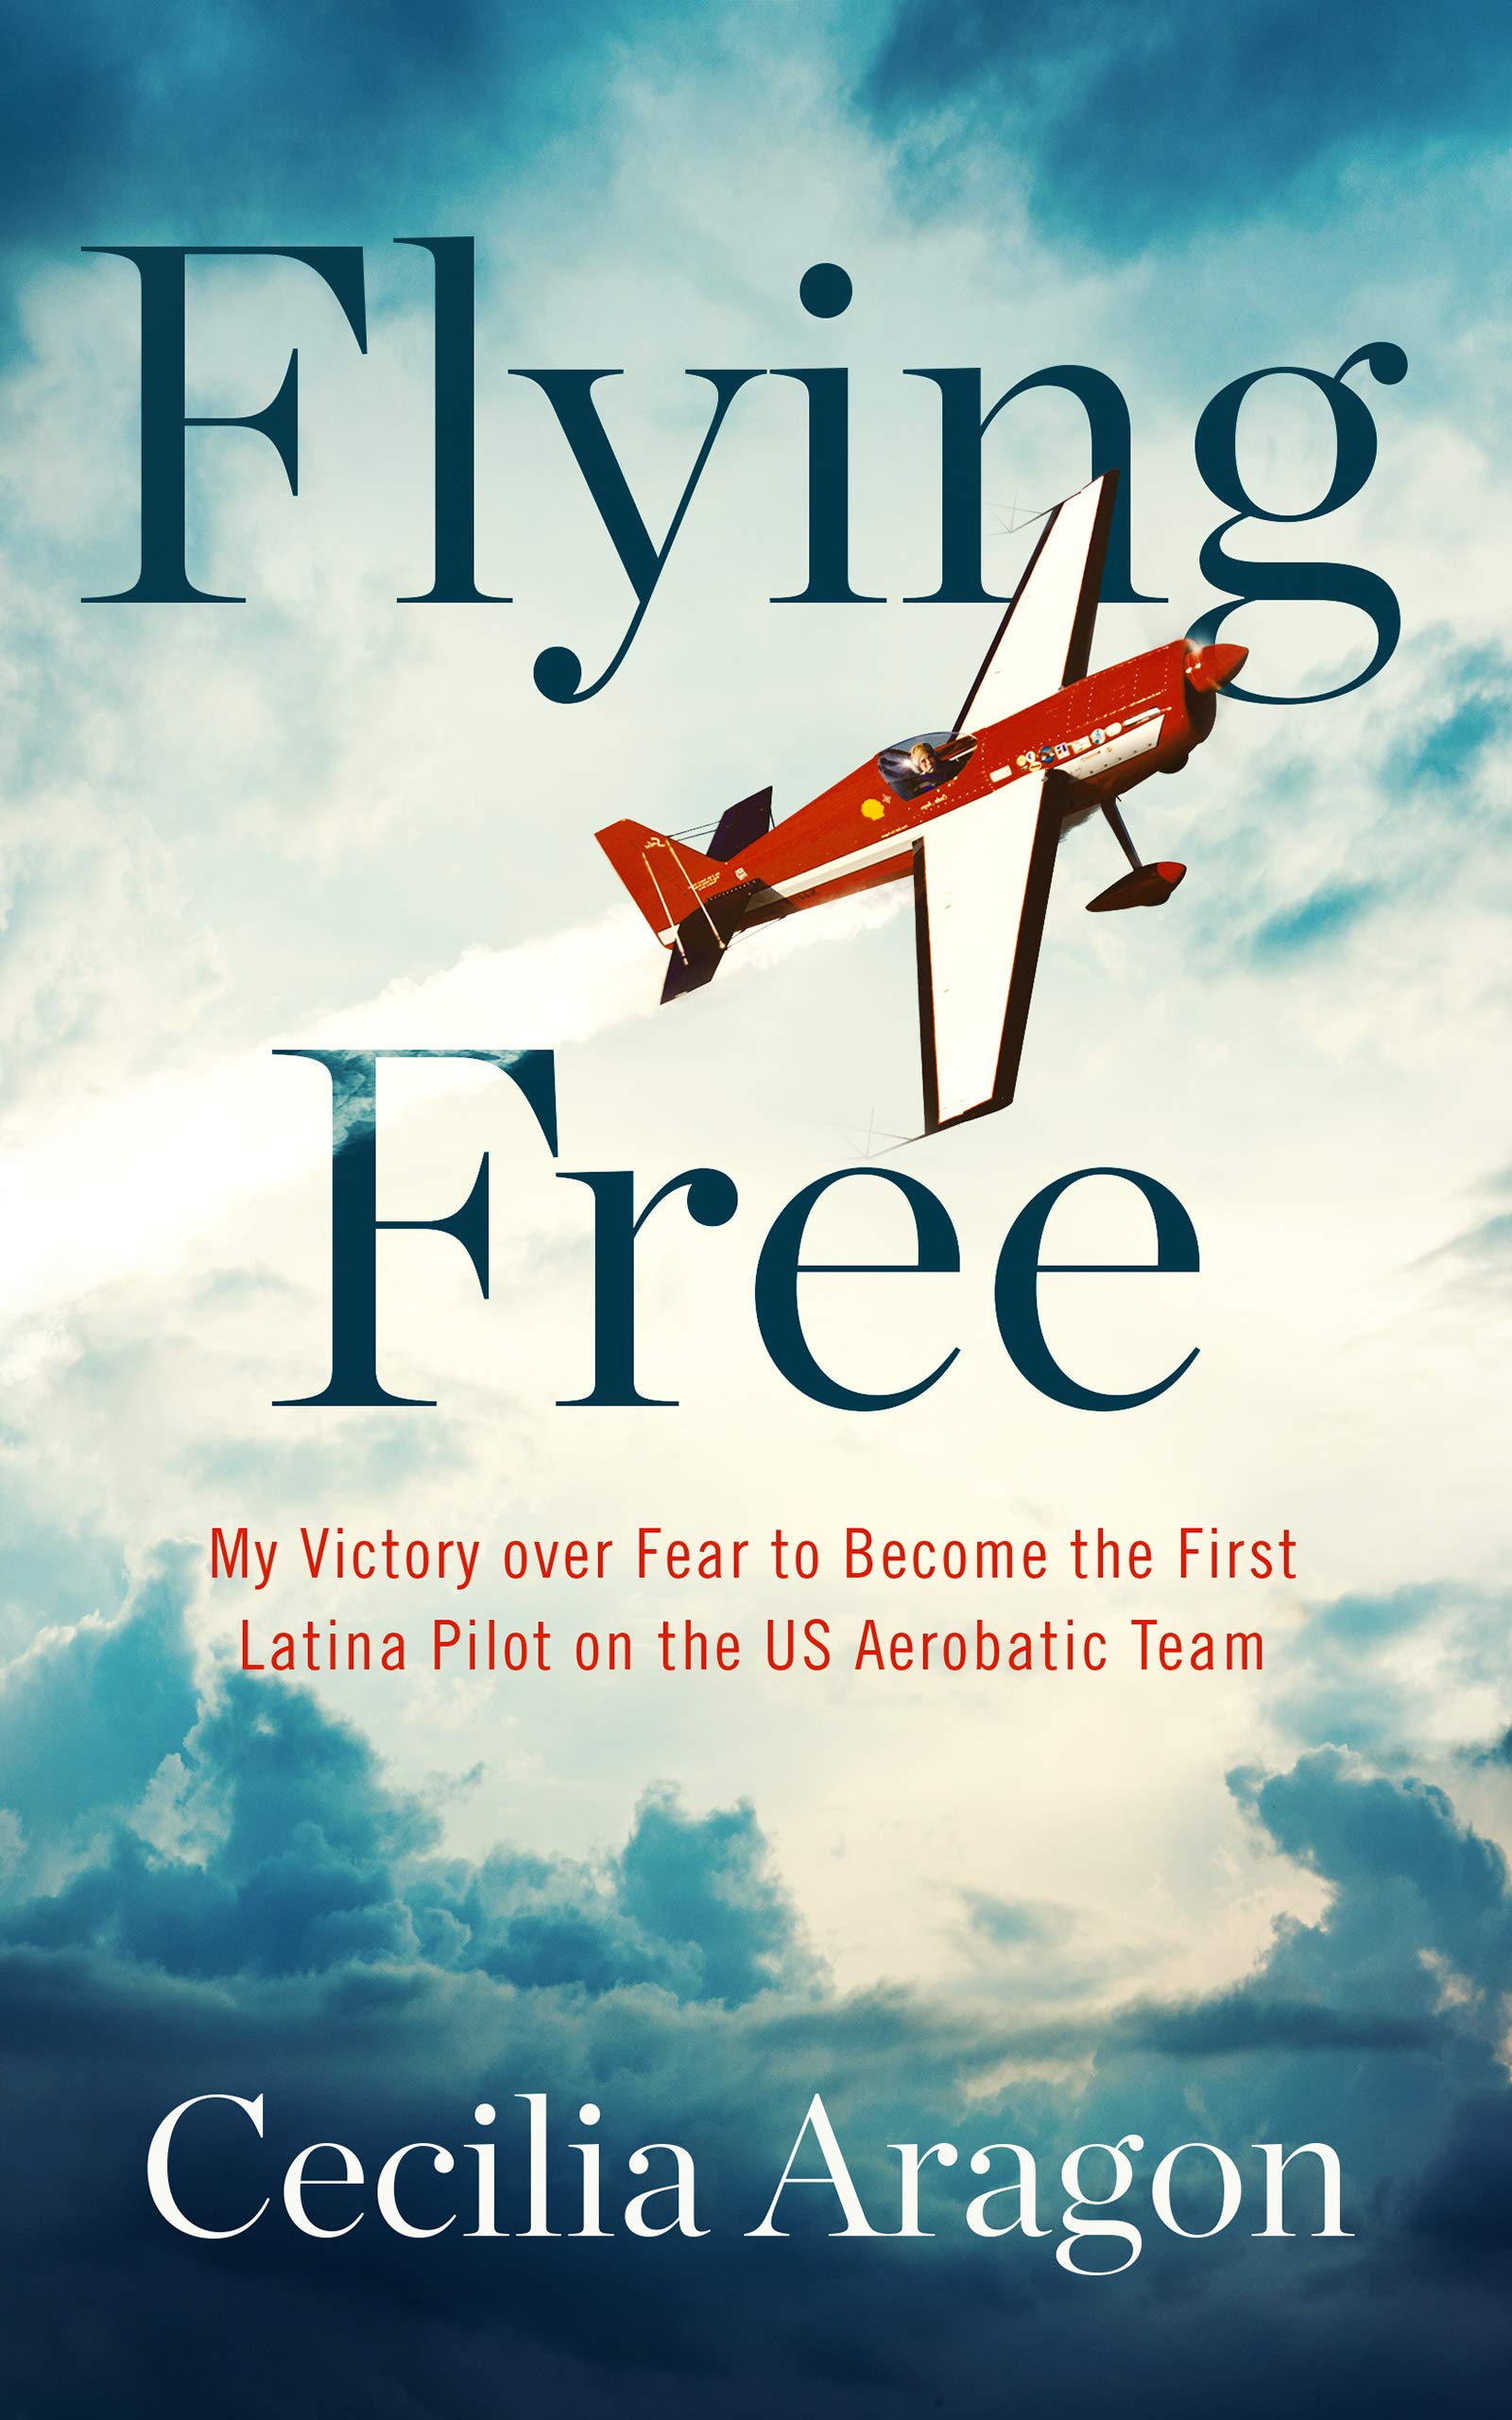 Flying Free: My Victory Over Feat to Become the First Latina Pilot on the US Aerobatic Team